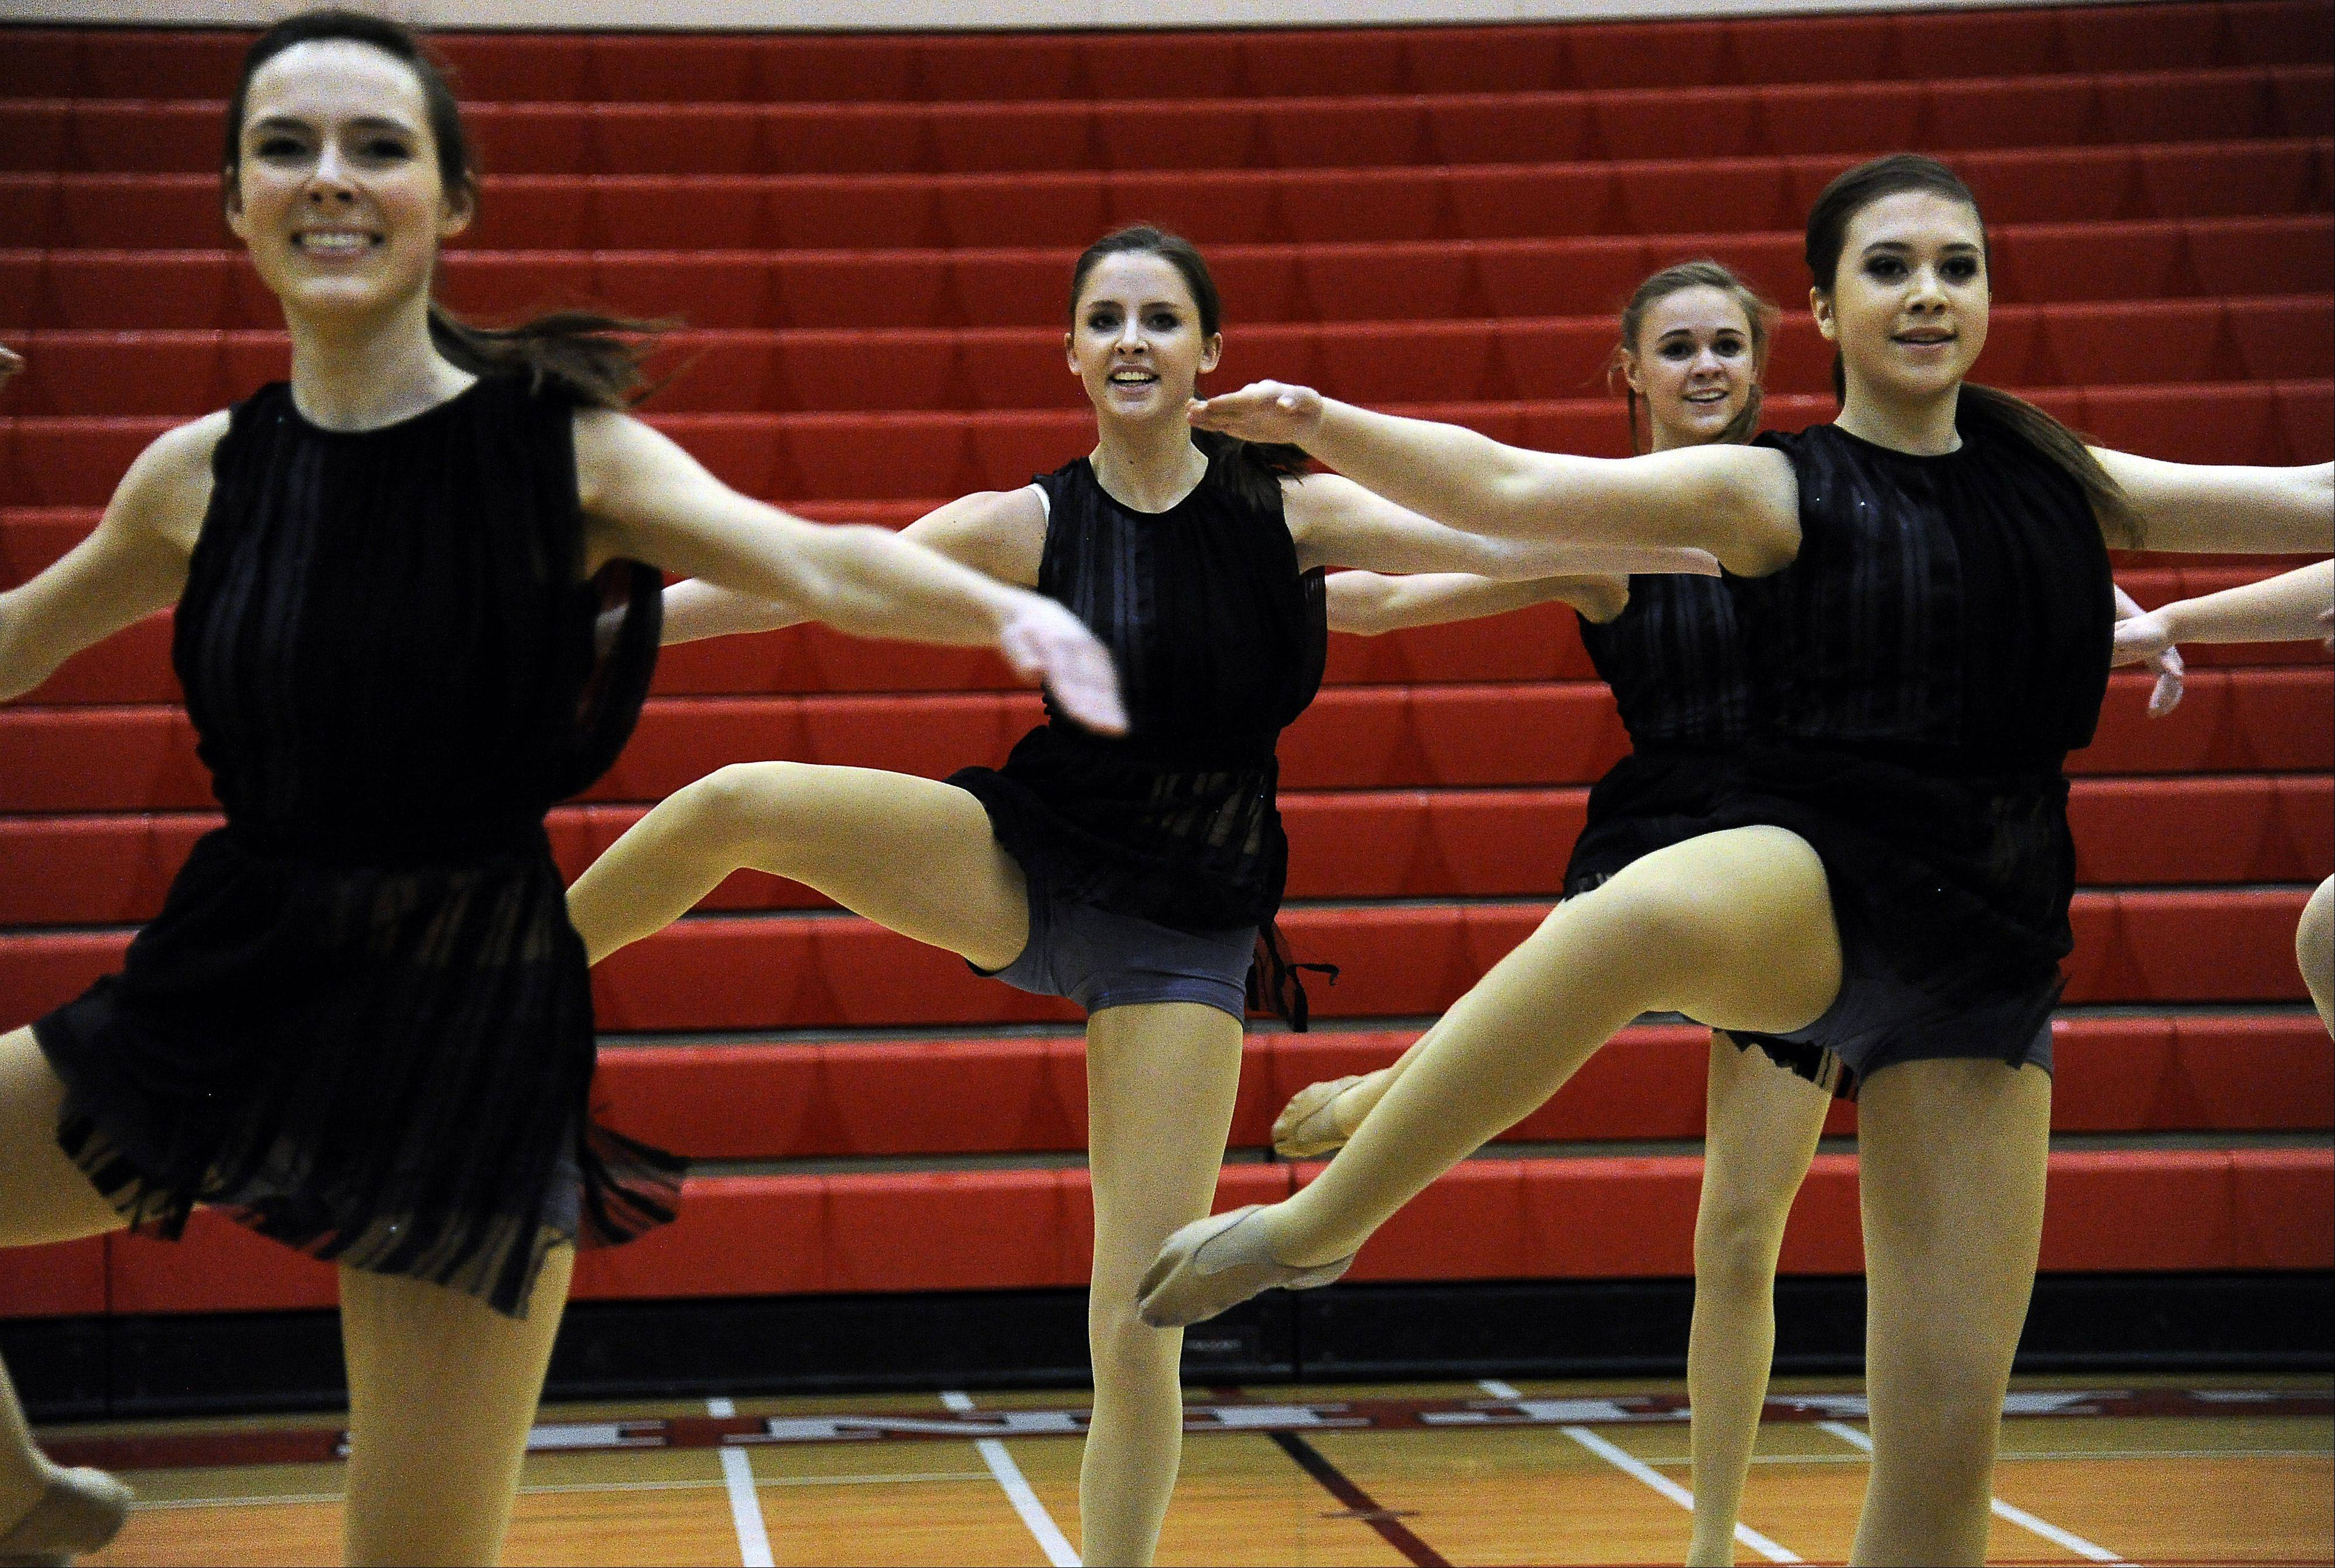 Dancing in the (2A) division are members of St. Charles East High School dance squad with Victoria Finlay (center) leading the way in the 1st annual Sectional Competition at Palatine High School on Saturday.